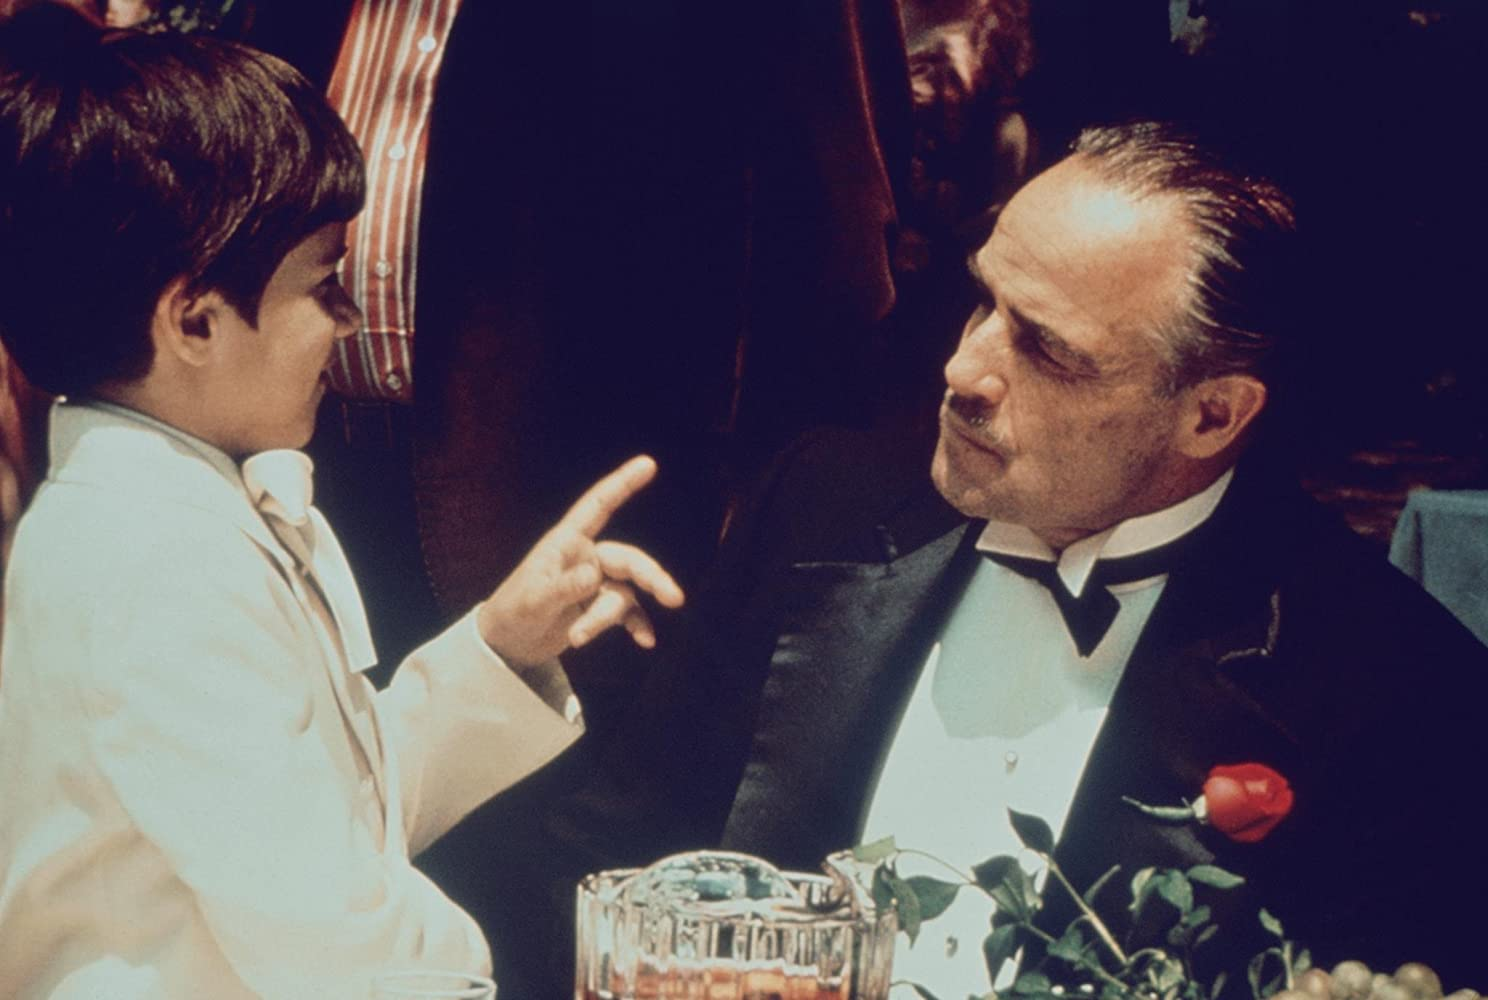 Marlon Brando in The Godfather (1972)